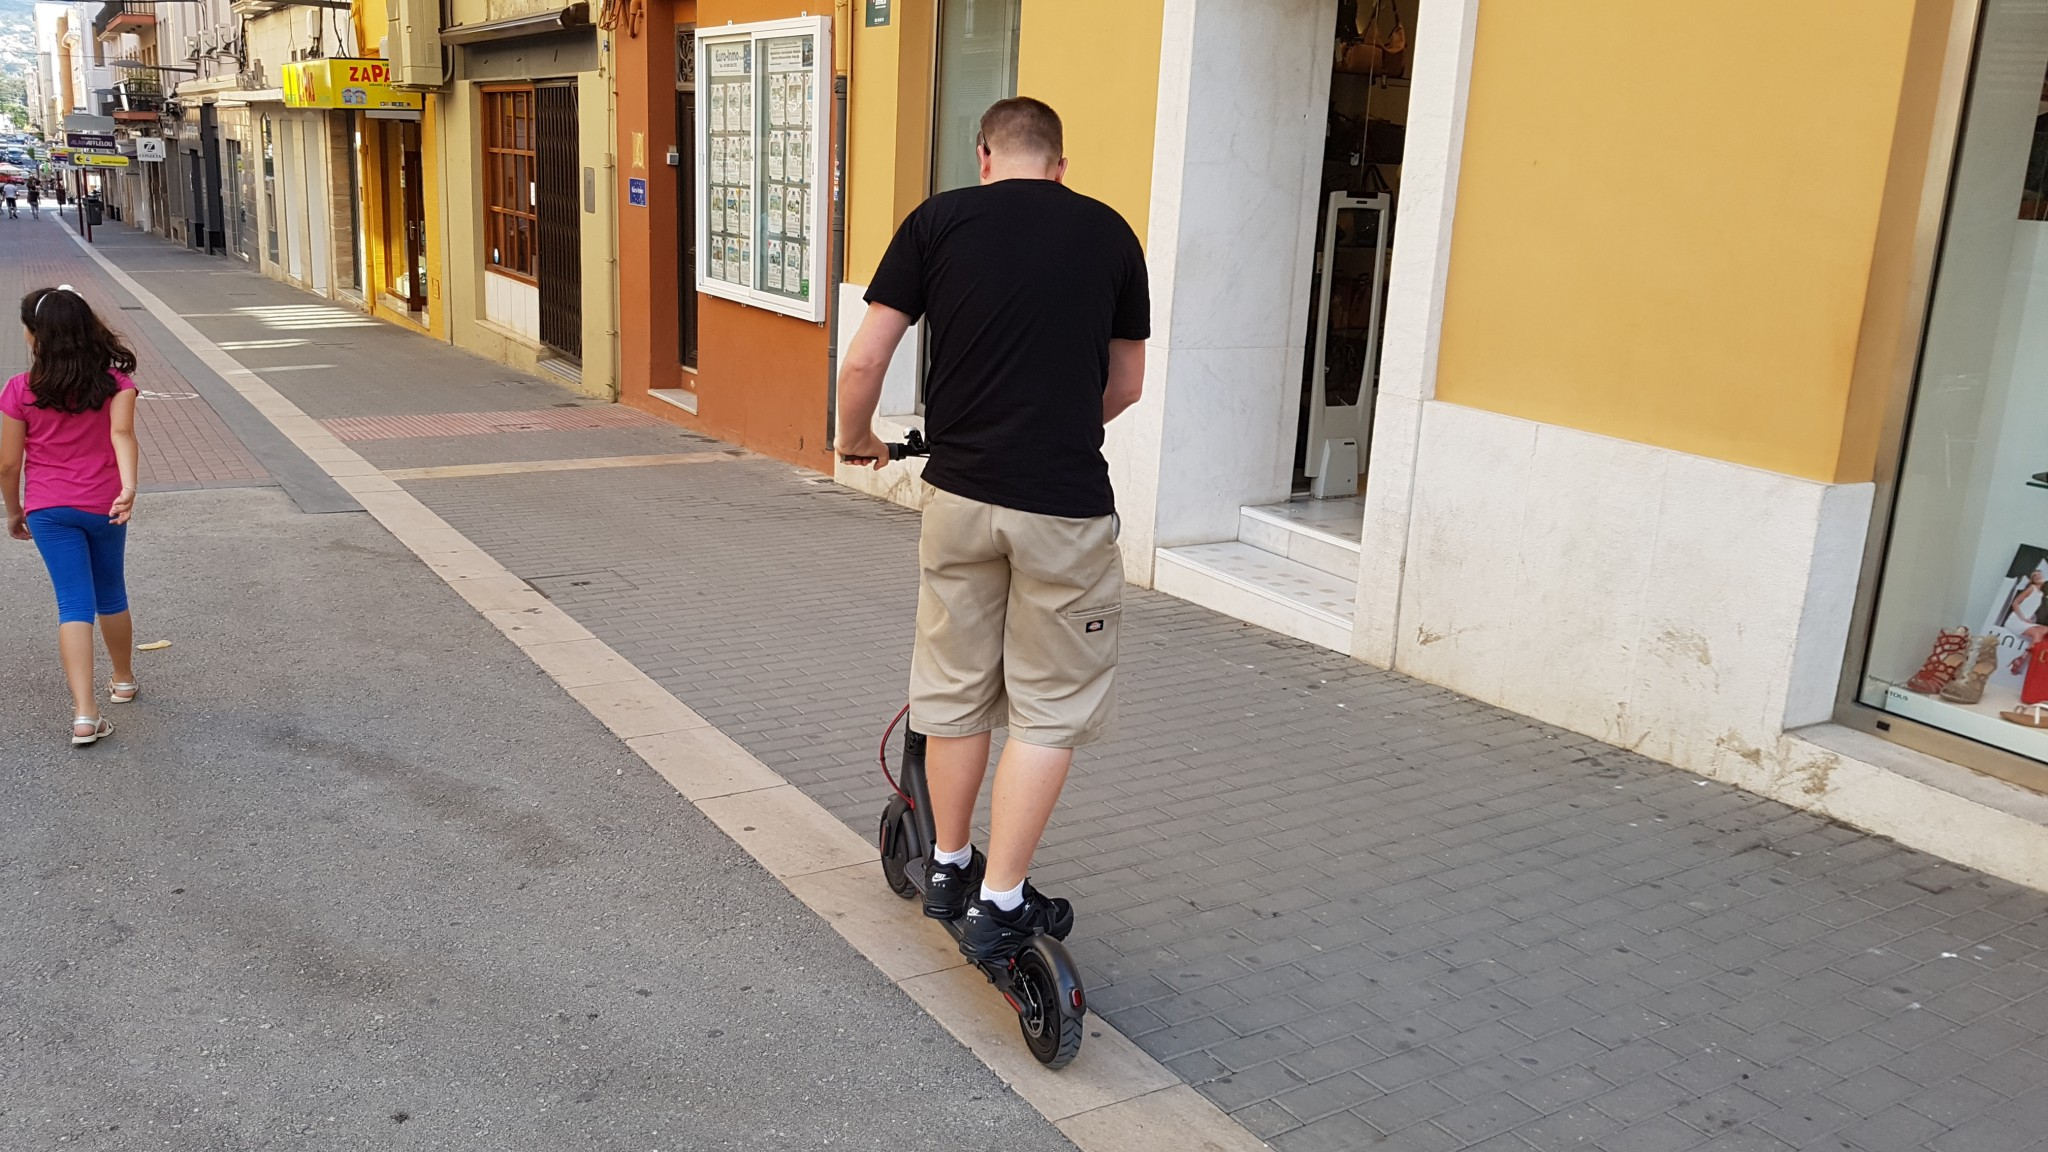 Xiaomi Mijia Electric Scooter (M365) Review - TechTablets